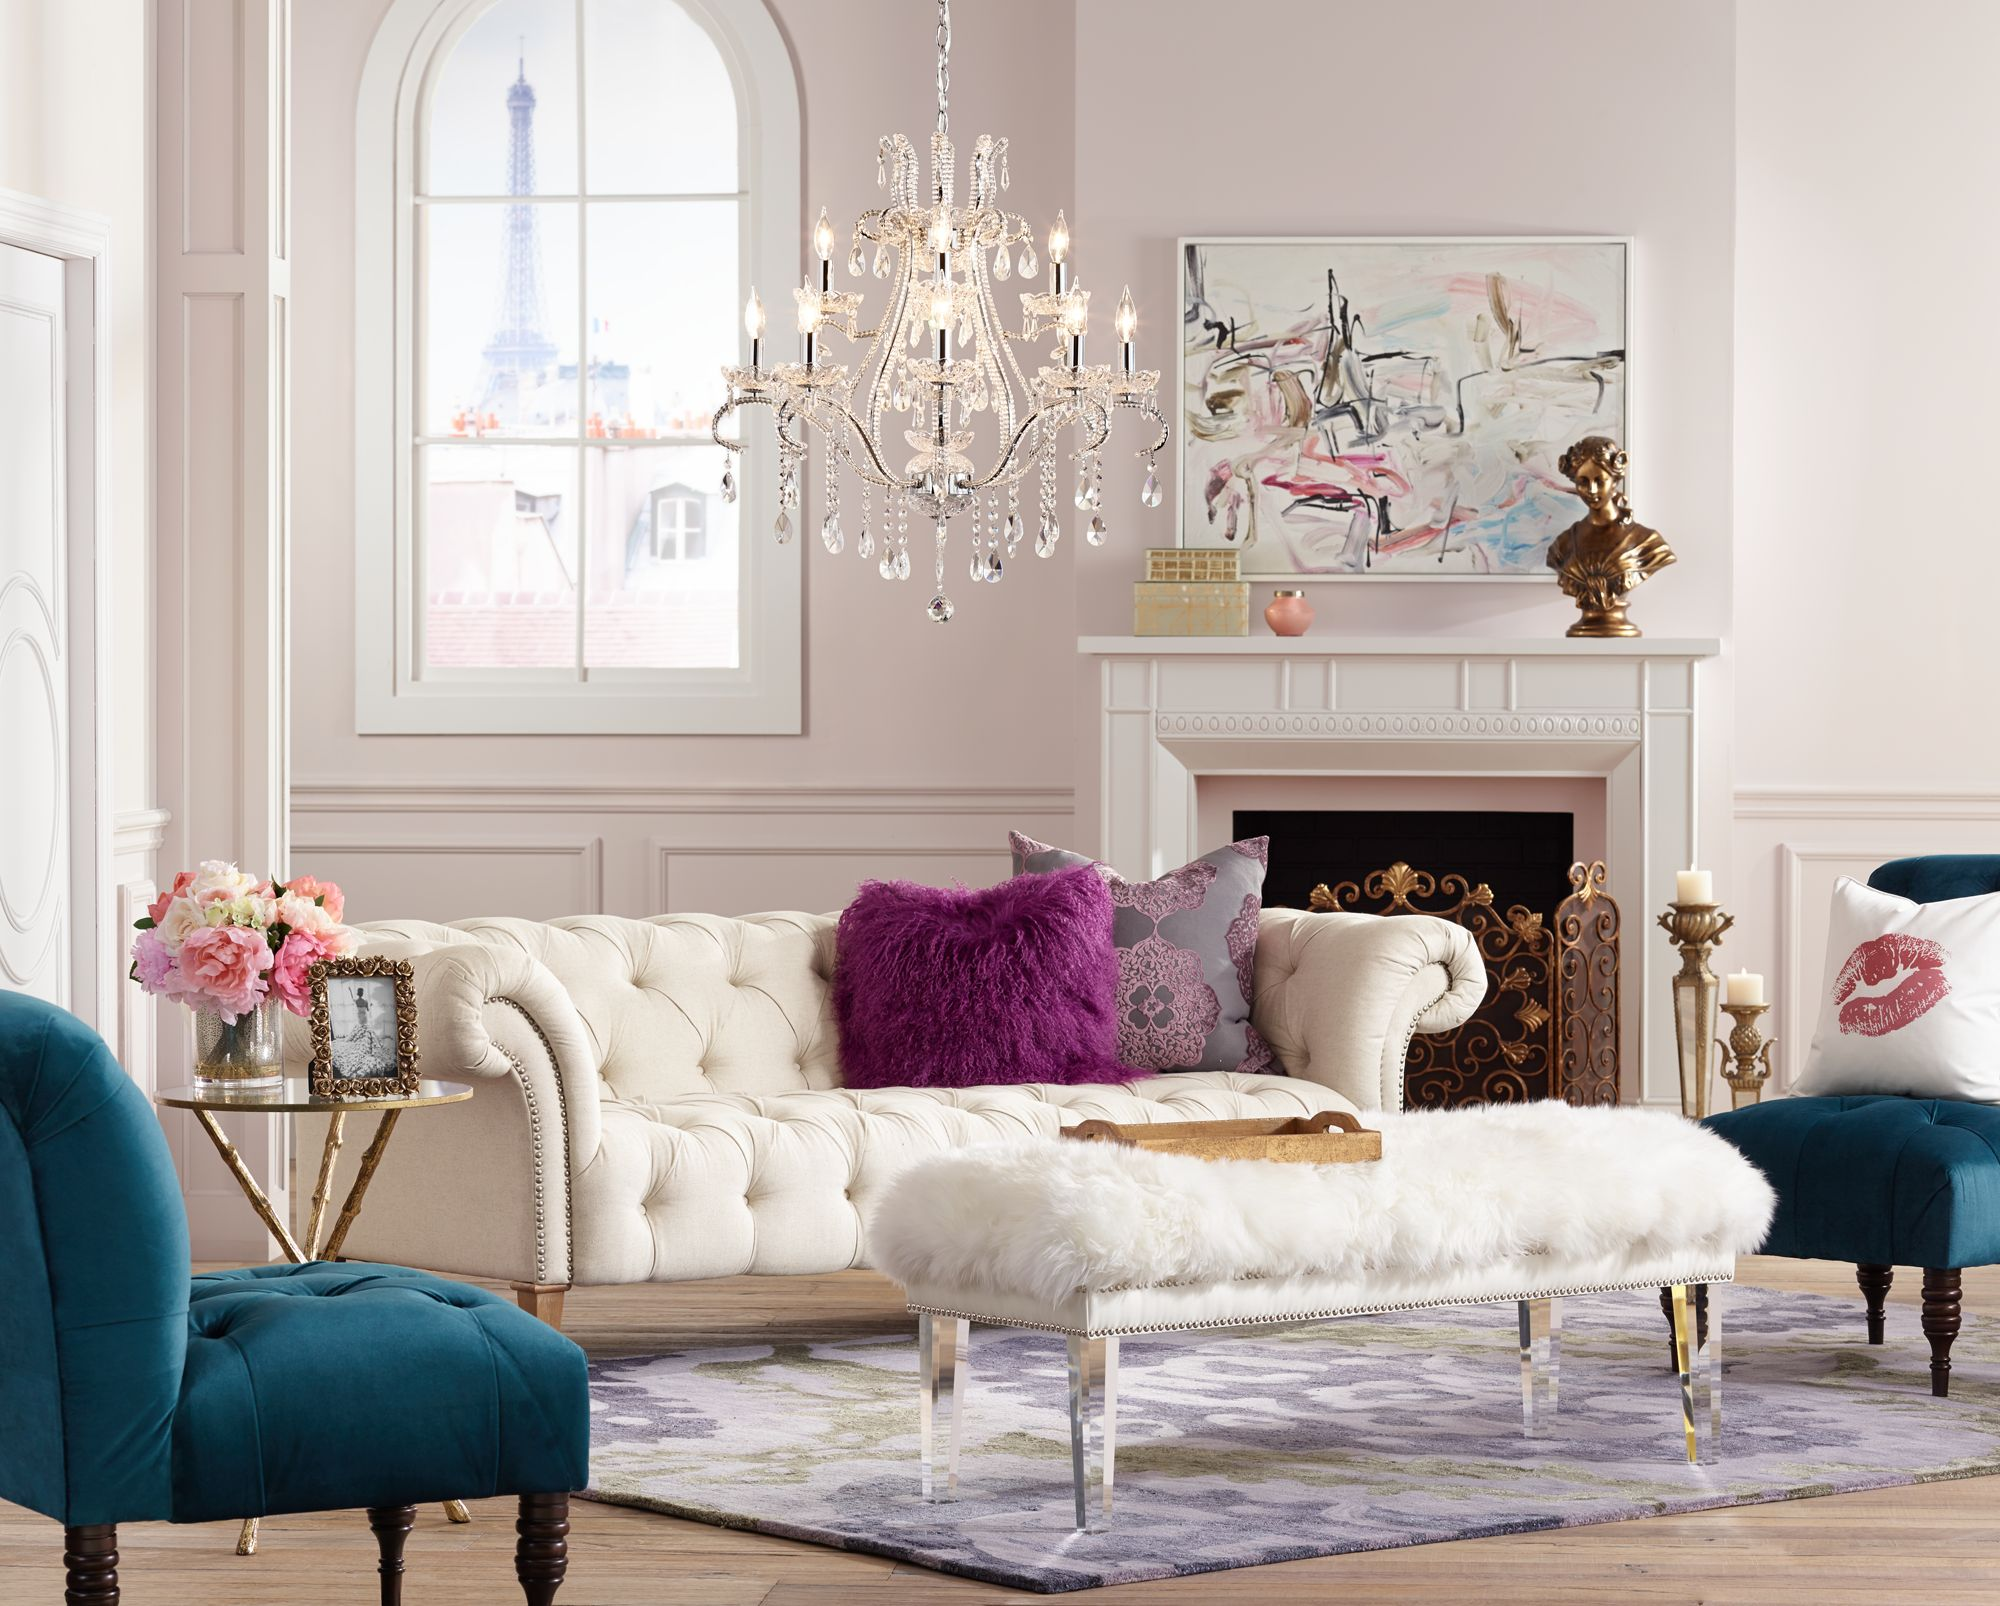 A Romantic Living Room Inspired By Posh Parisian Furniture And Lighting. Part 69